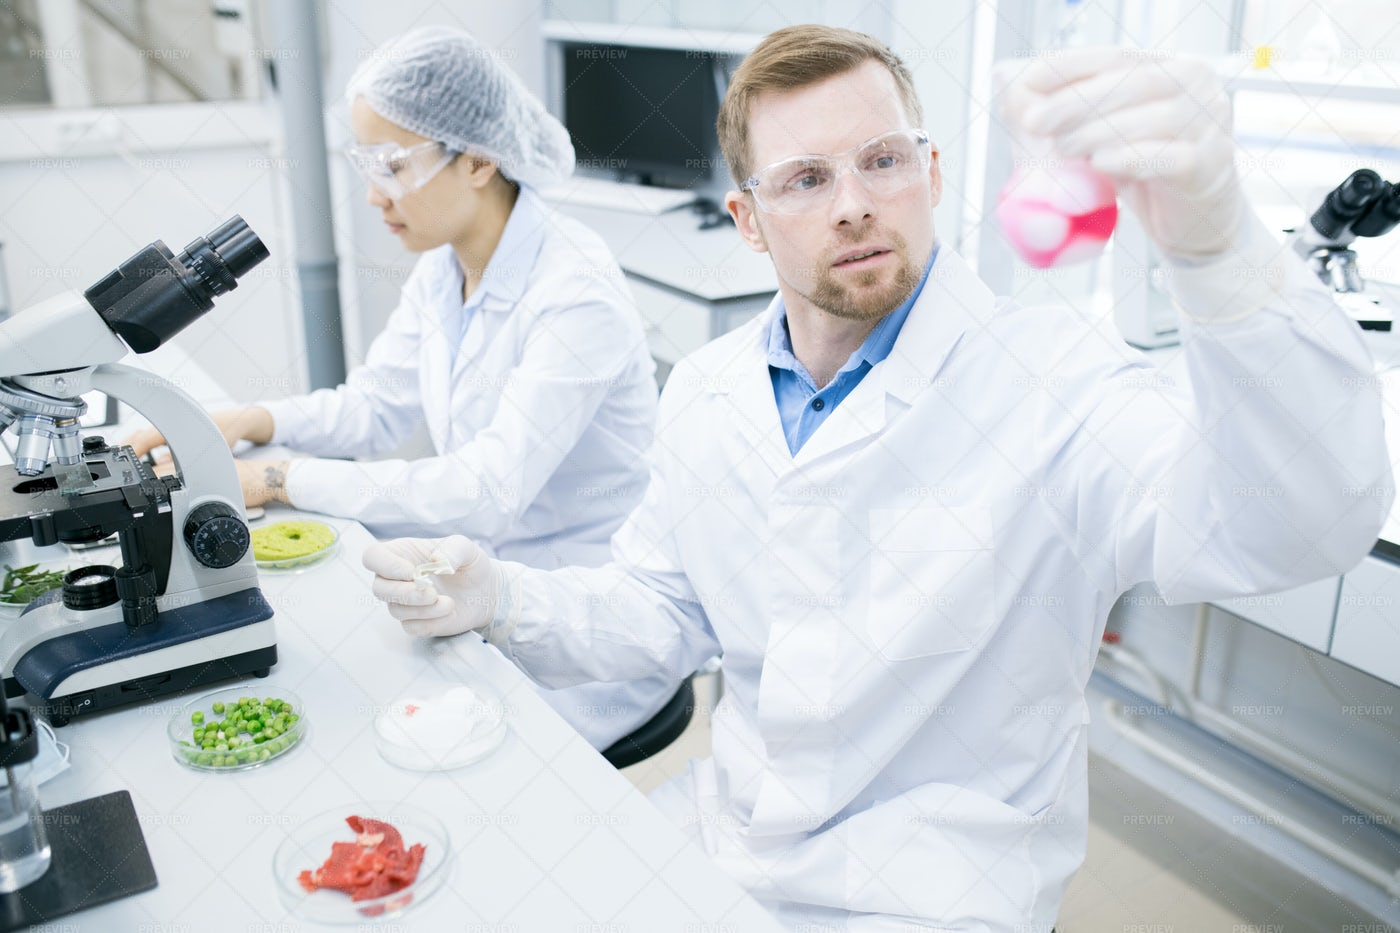 Modern Scientists Doing Research In...: Stock Photos